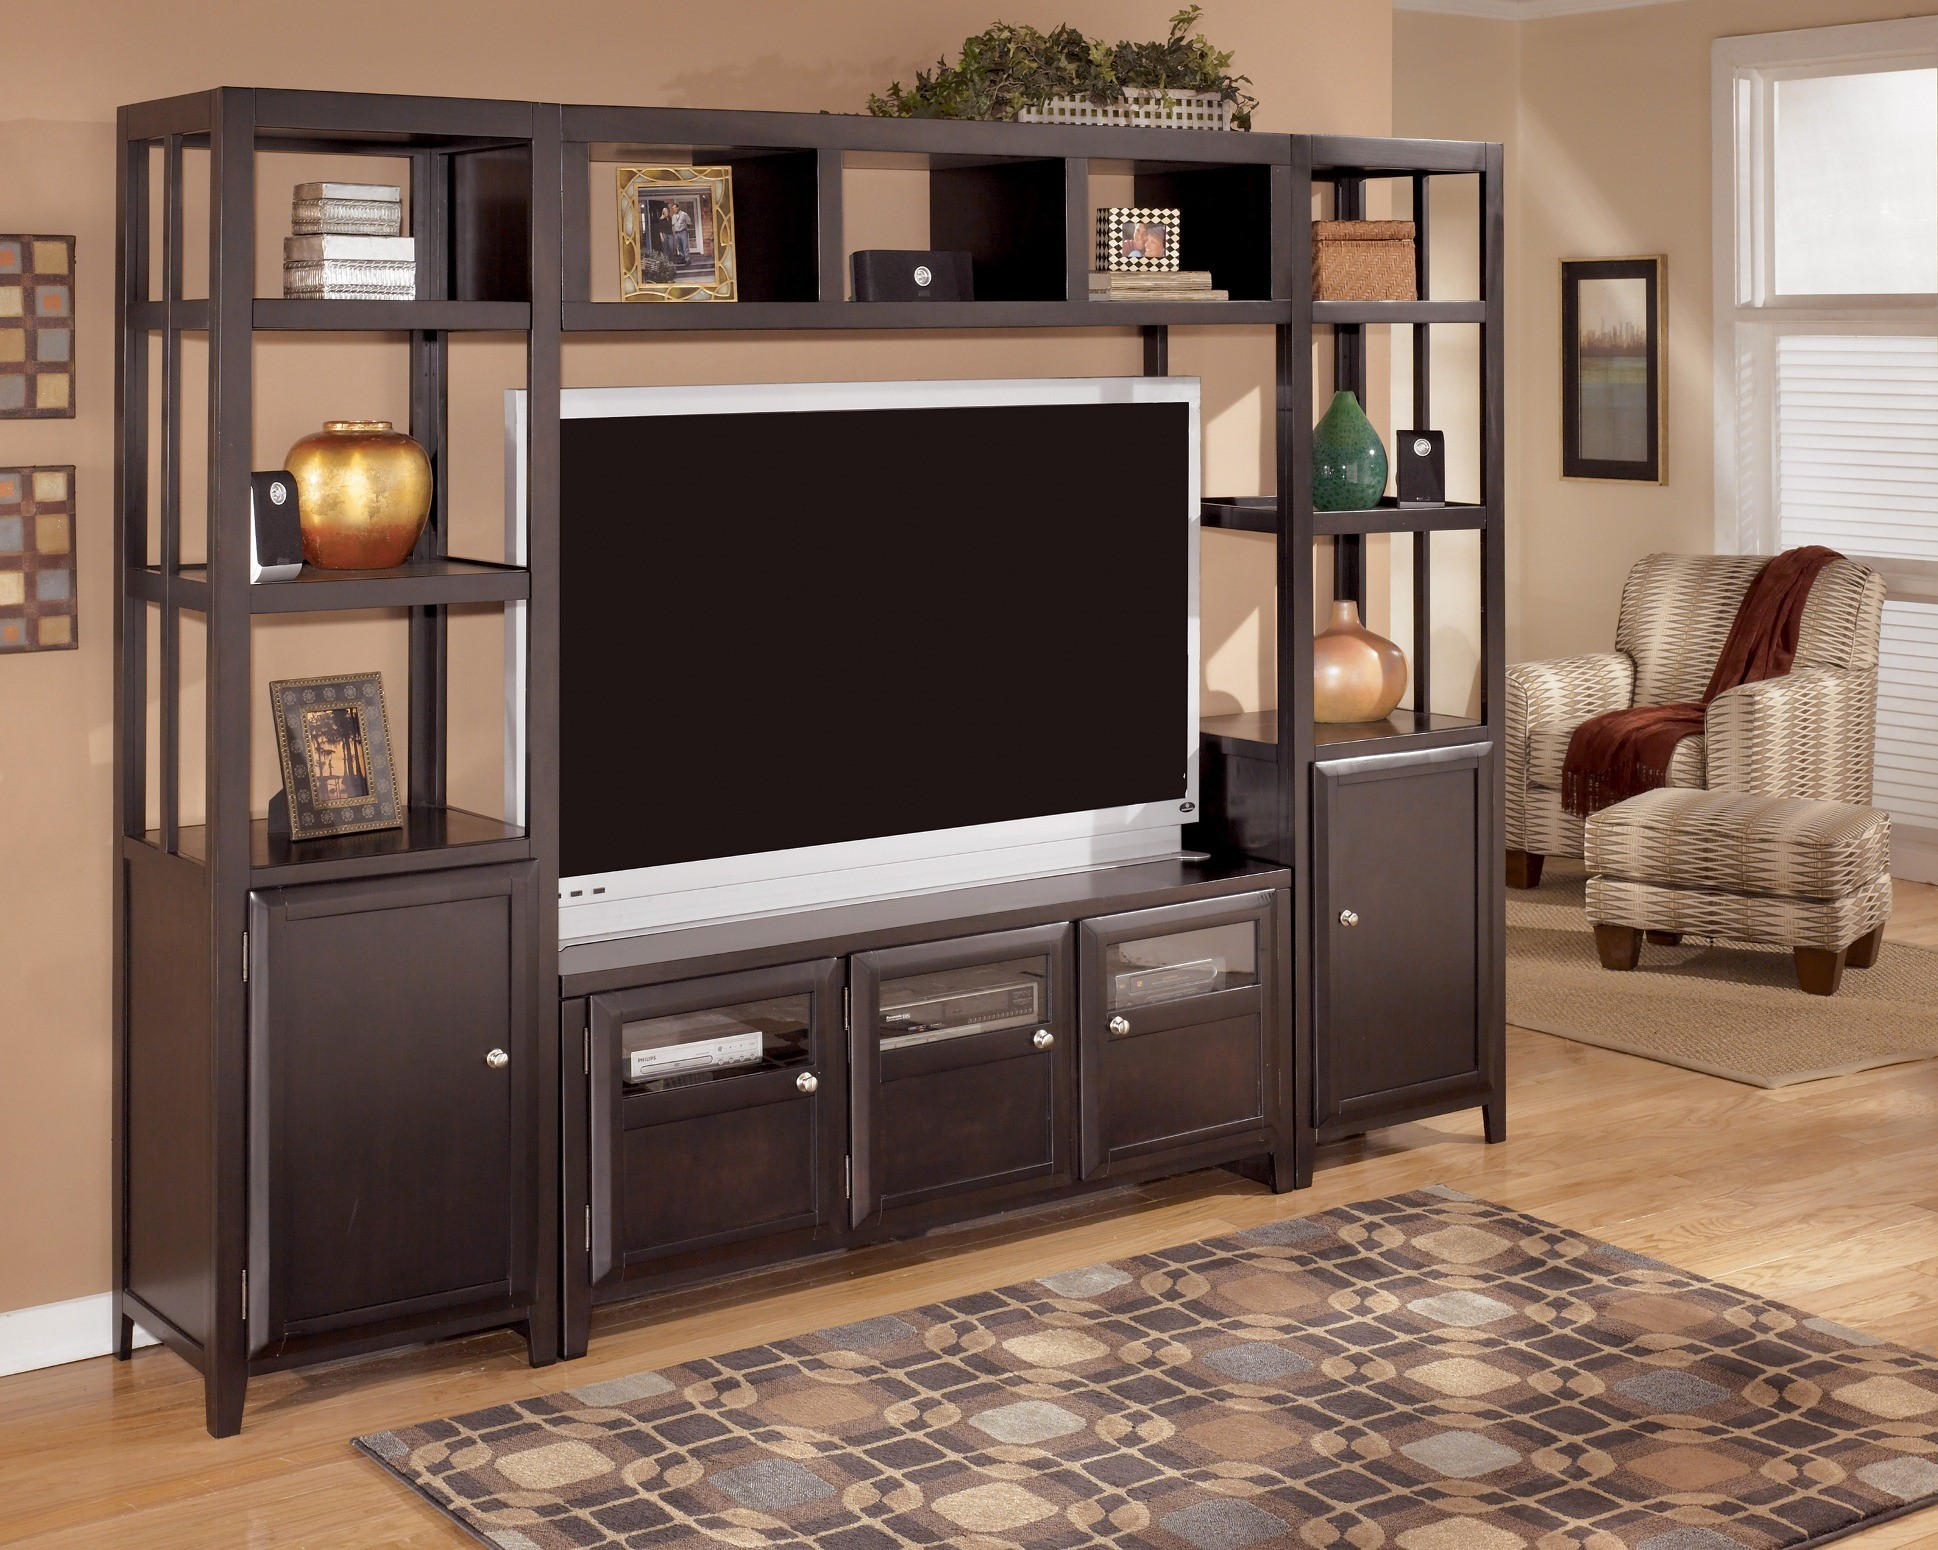 Naomi Entertainment Wall Unit From Ashley W461 21 26 23 24 Coleman Furniture